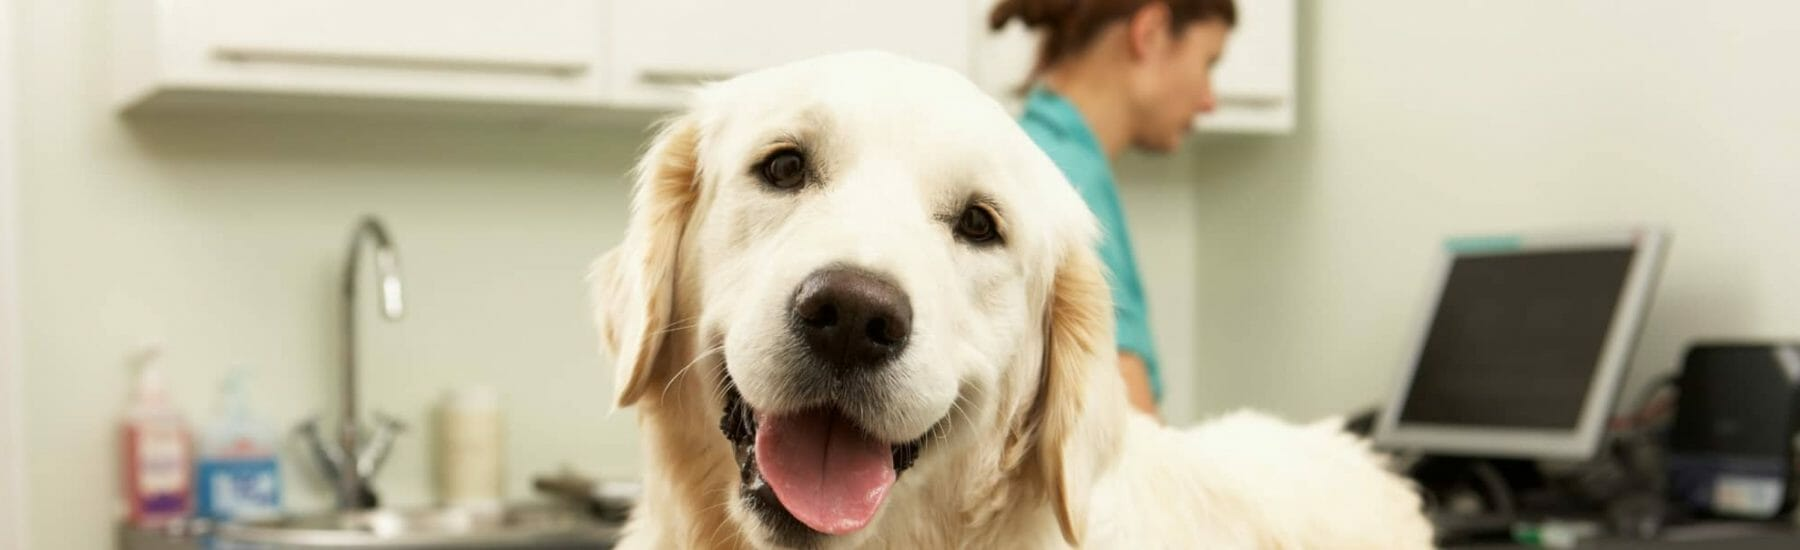 Golden Retriever in a Veterinary Office